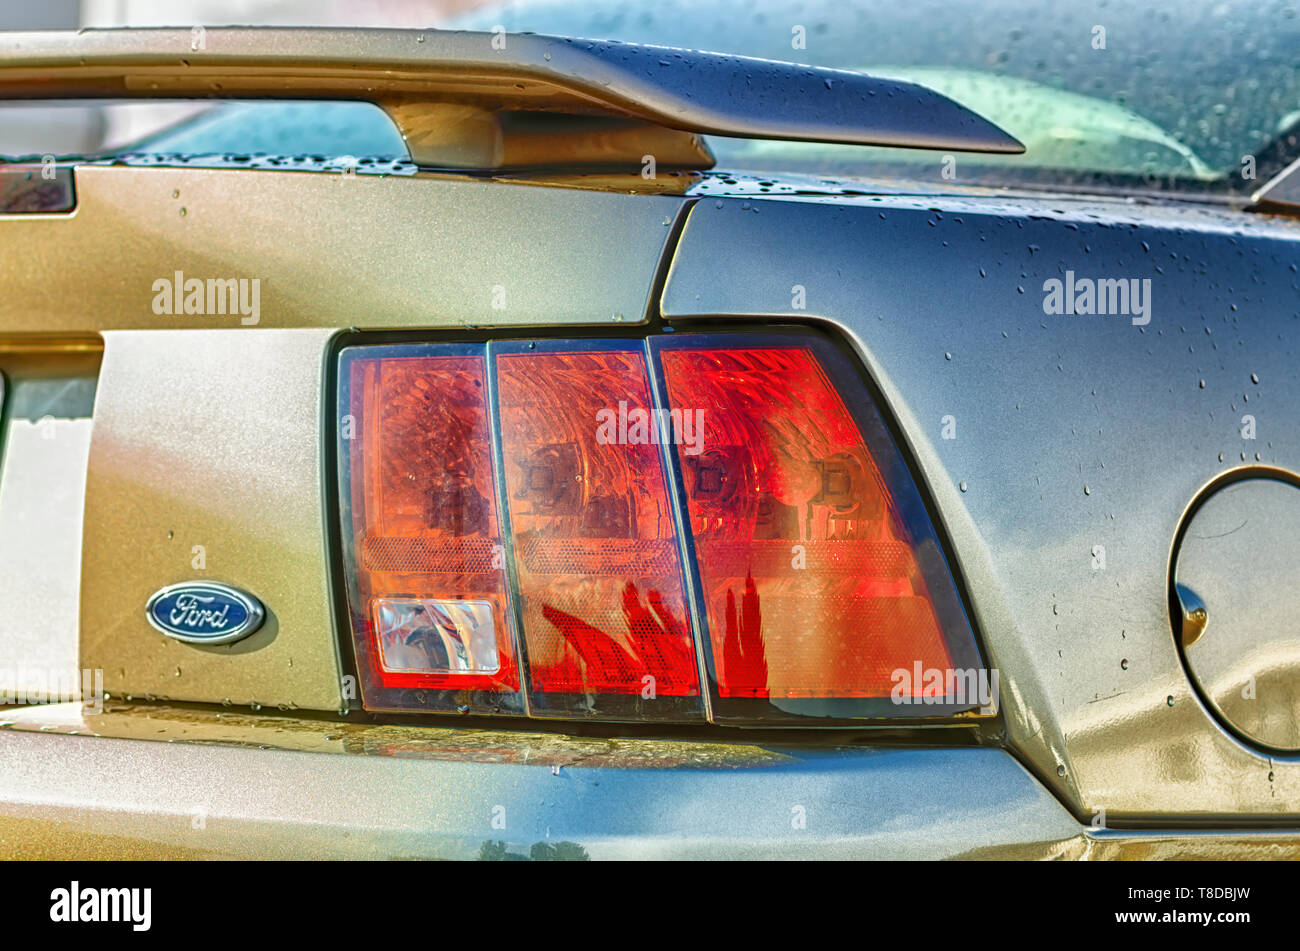 The right rear profile of a rain washed Ford Mustang GT Coupe. Rear spoiler, tail lights, Ford Logo, and the fuel lid on the car are visible. - Stock Image